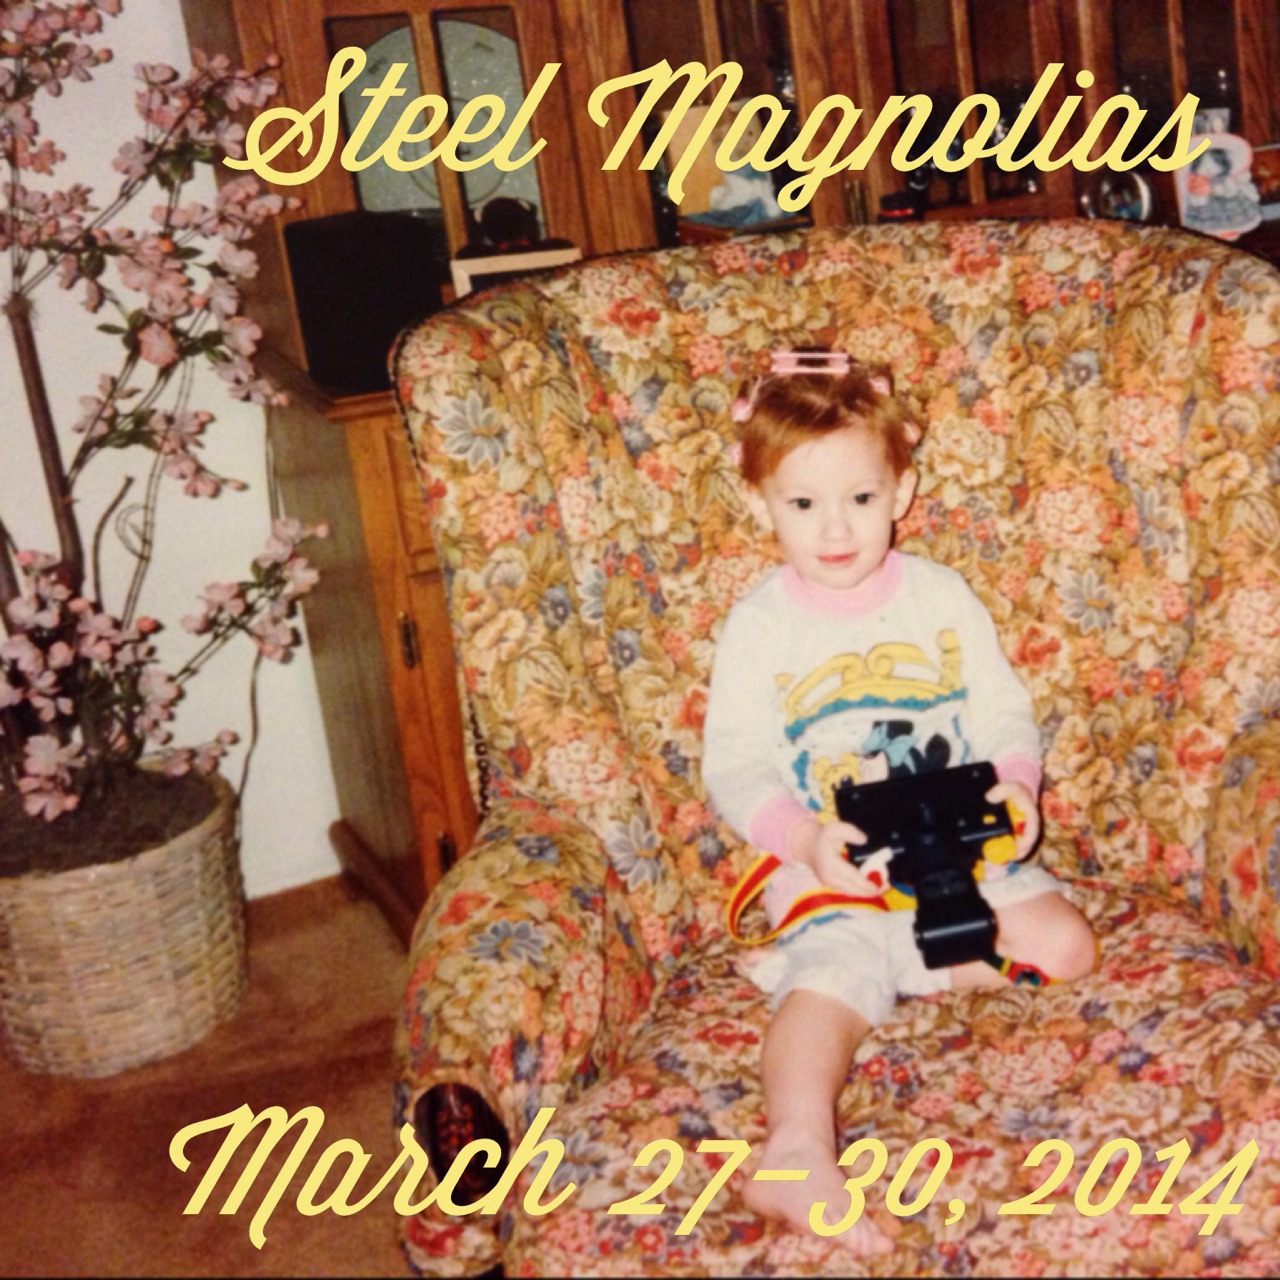 have you bought your tickets yet? Judsontheater.com/steelmagnolias!